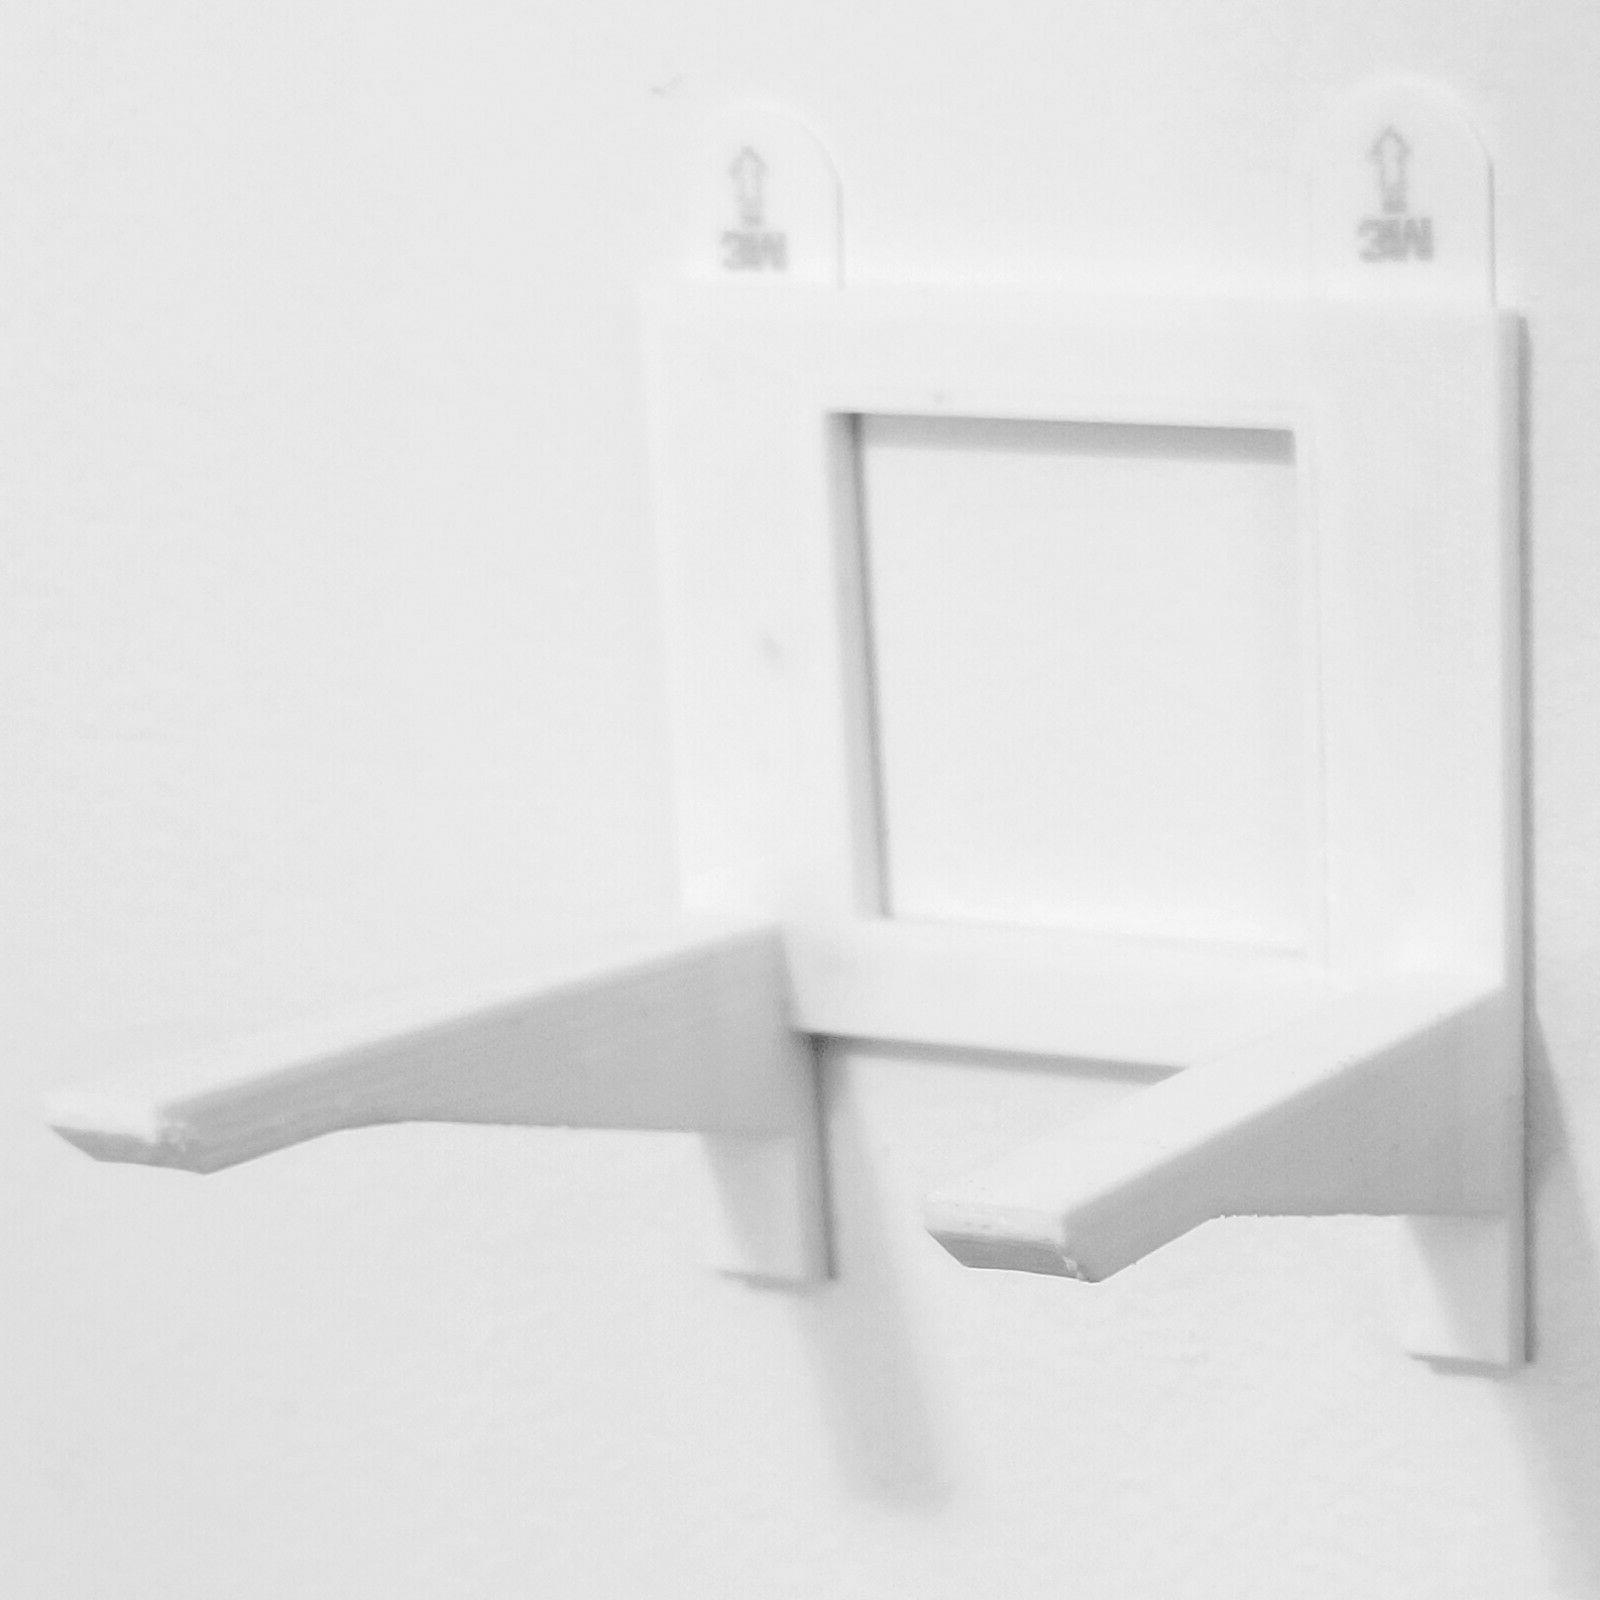 white wall bracket for mounting boxed funko